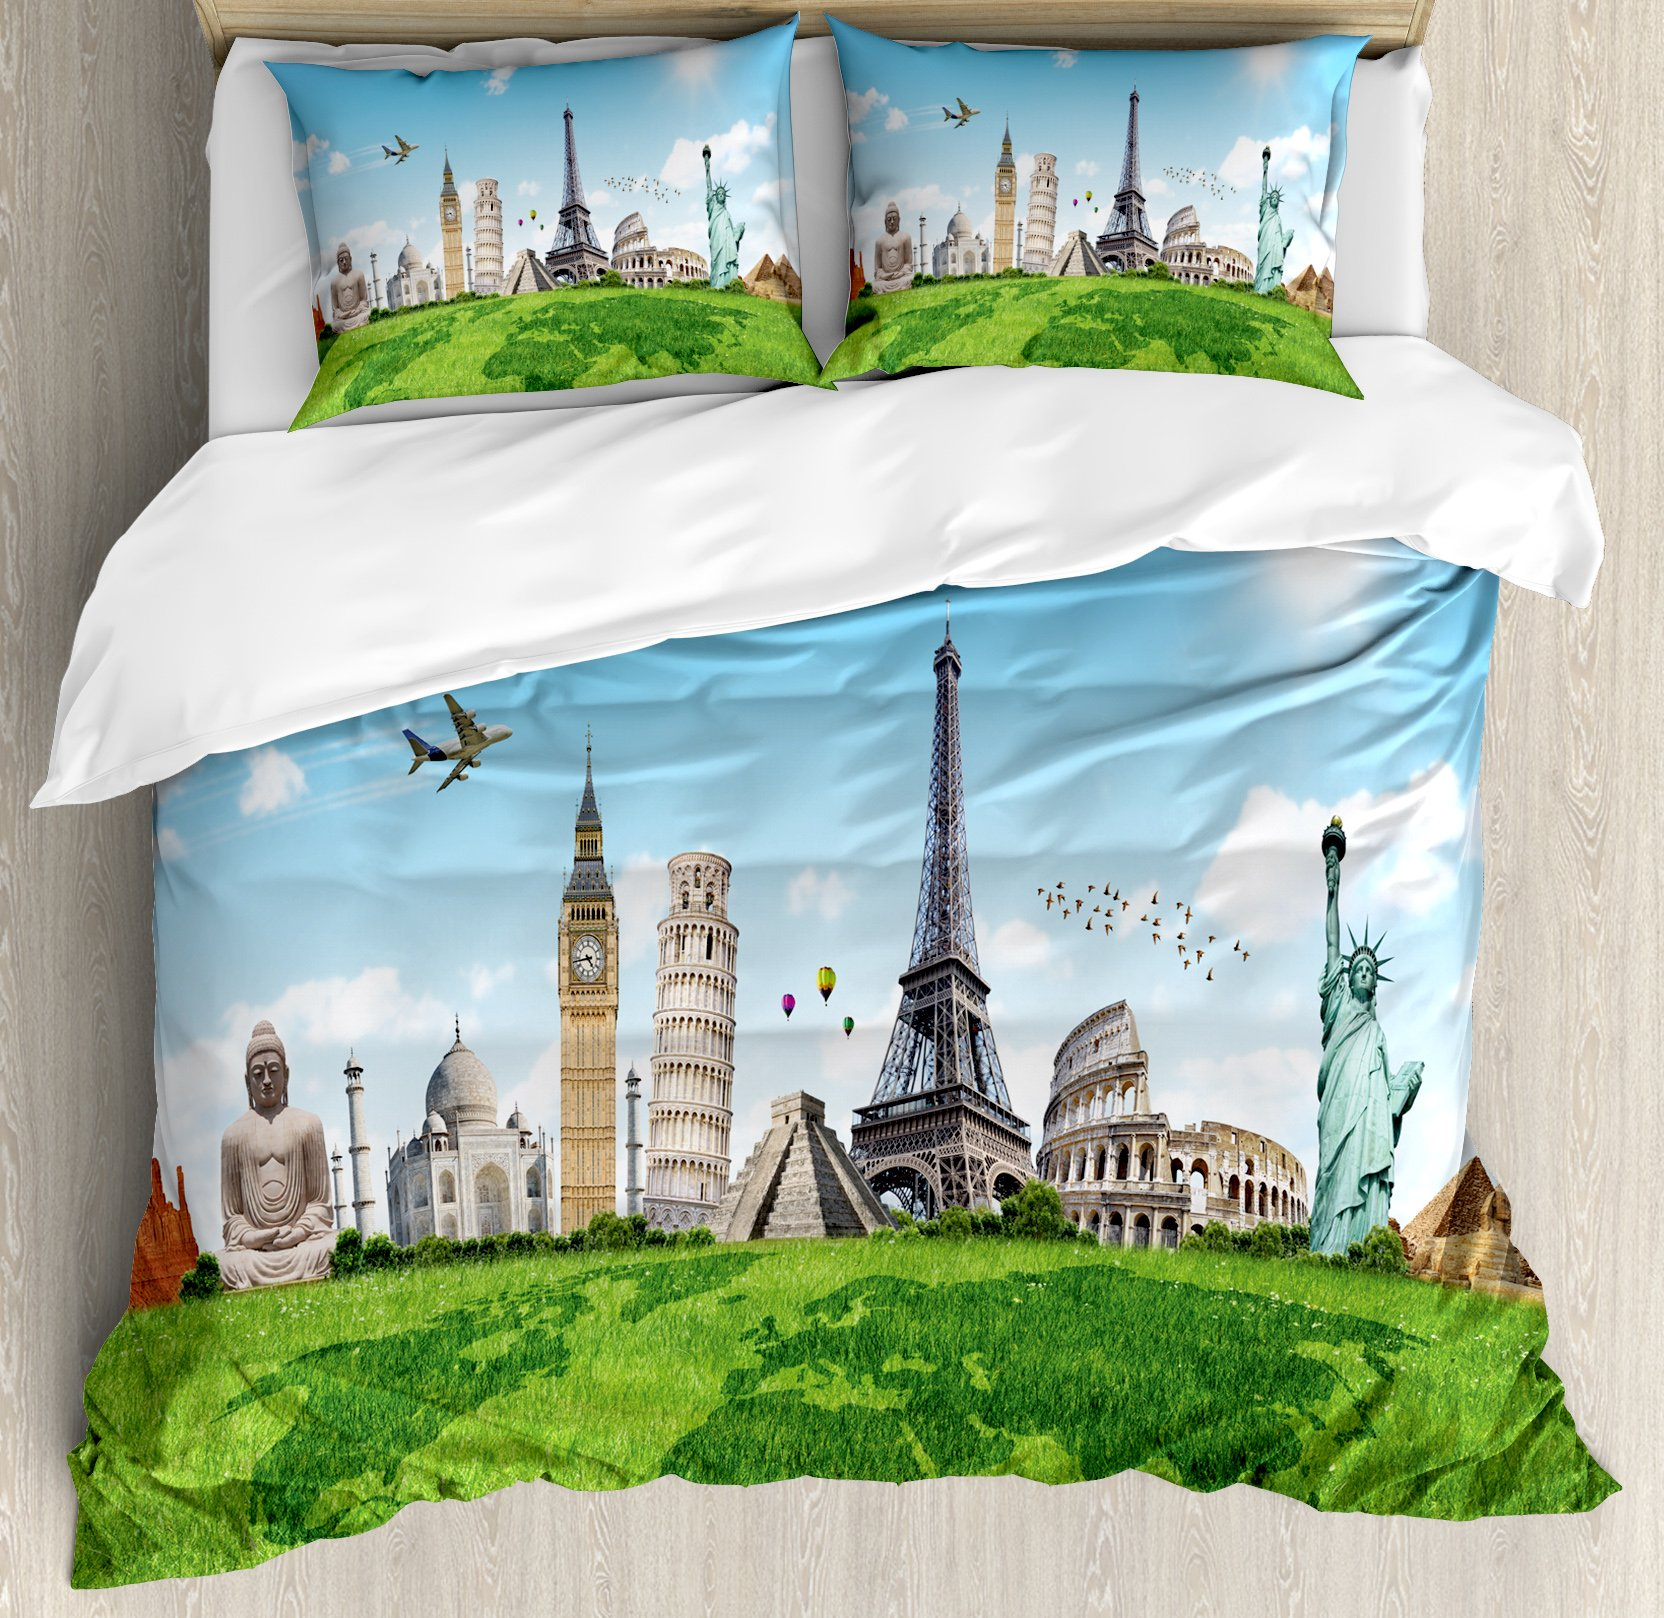 Ambesonne Map Duvet Cover Set King Size, Famous Historical Monuments of the World Theme Holiday Travel Destinations, Decorative 3 Piece Bedding Set with 2 Pillow Shams, Light Blue Green Ivory by Ambesonne